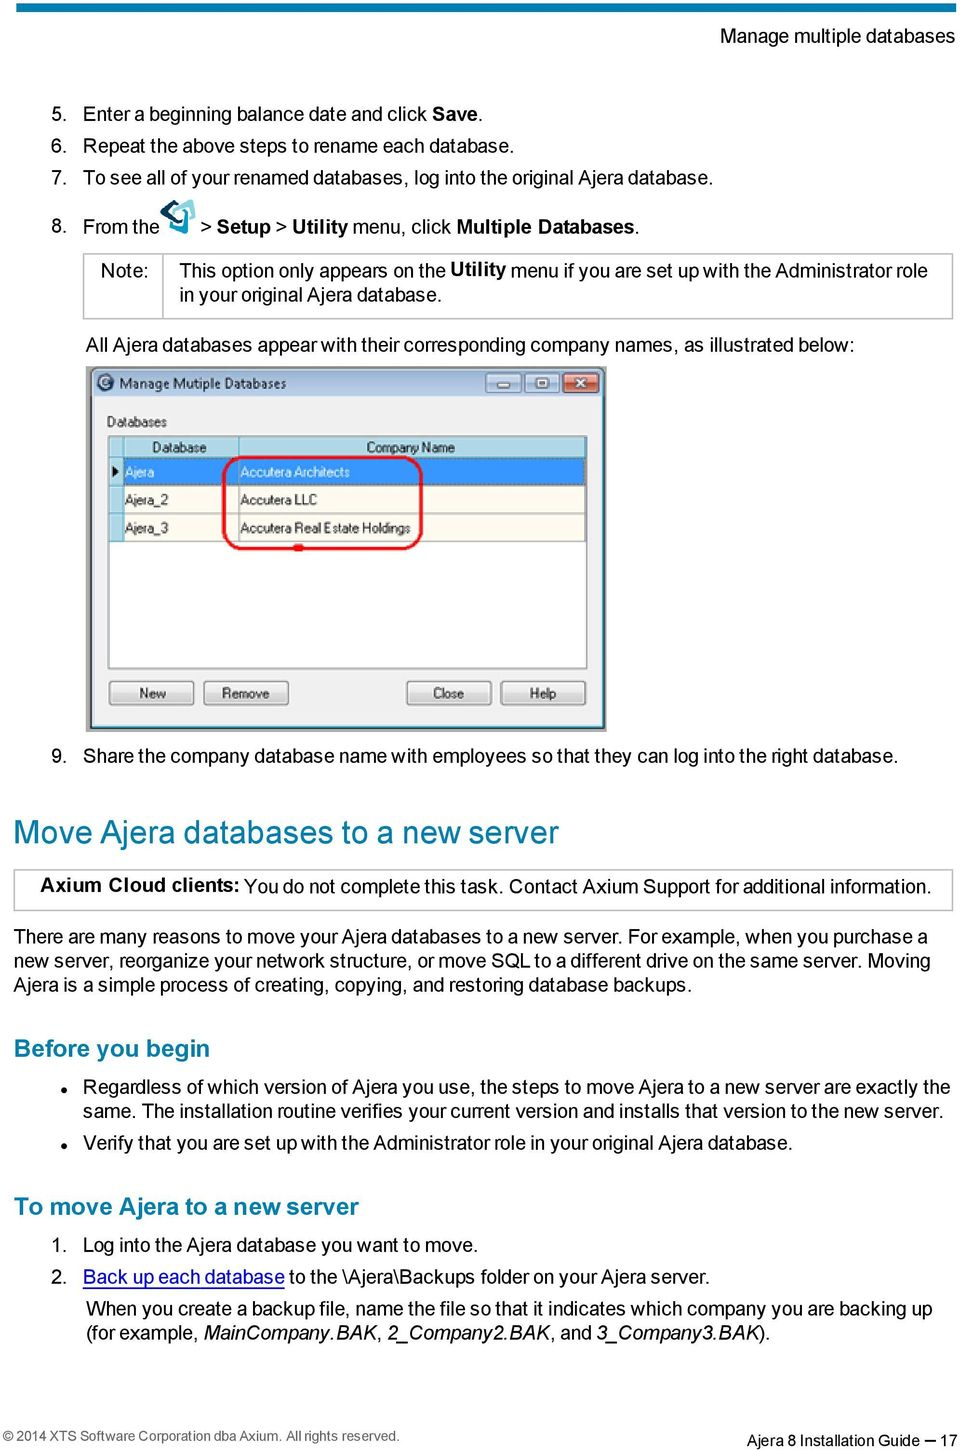 This option only appears on the Utility menu if you are set up with the Administrator role in your original Ajera database.